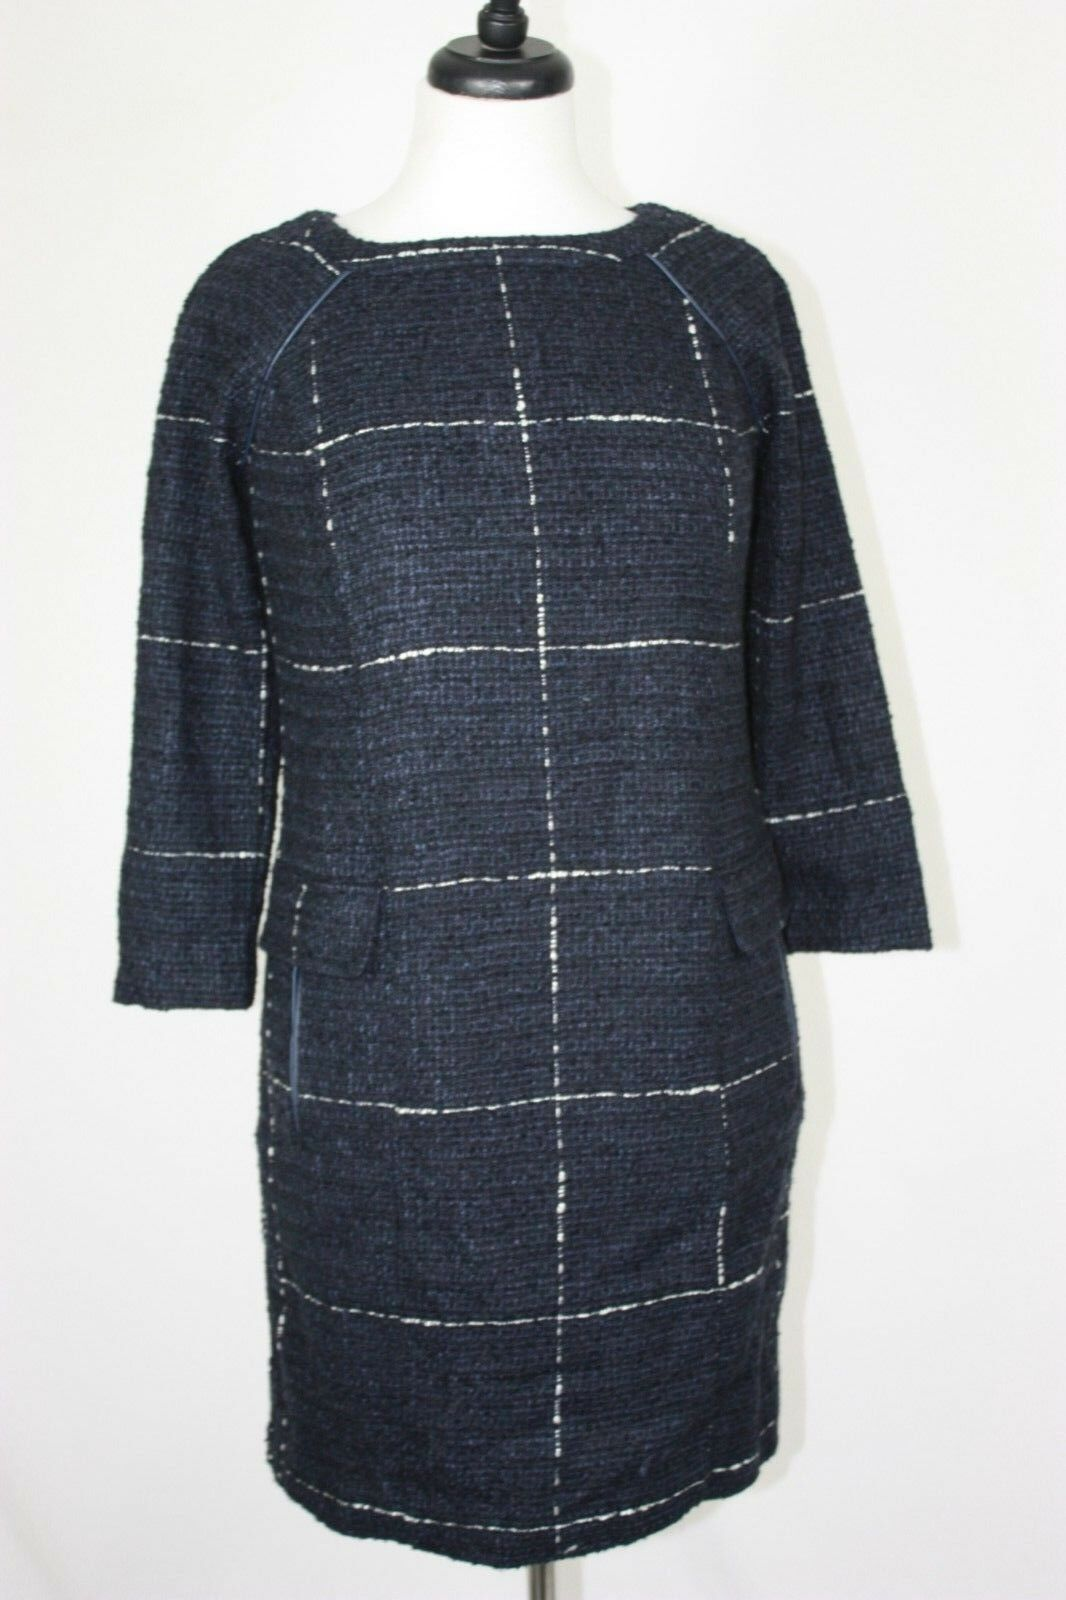 NWT Joules Womens Esther Navy Tweed Shift Dress Sz. 2